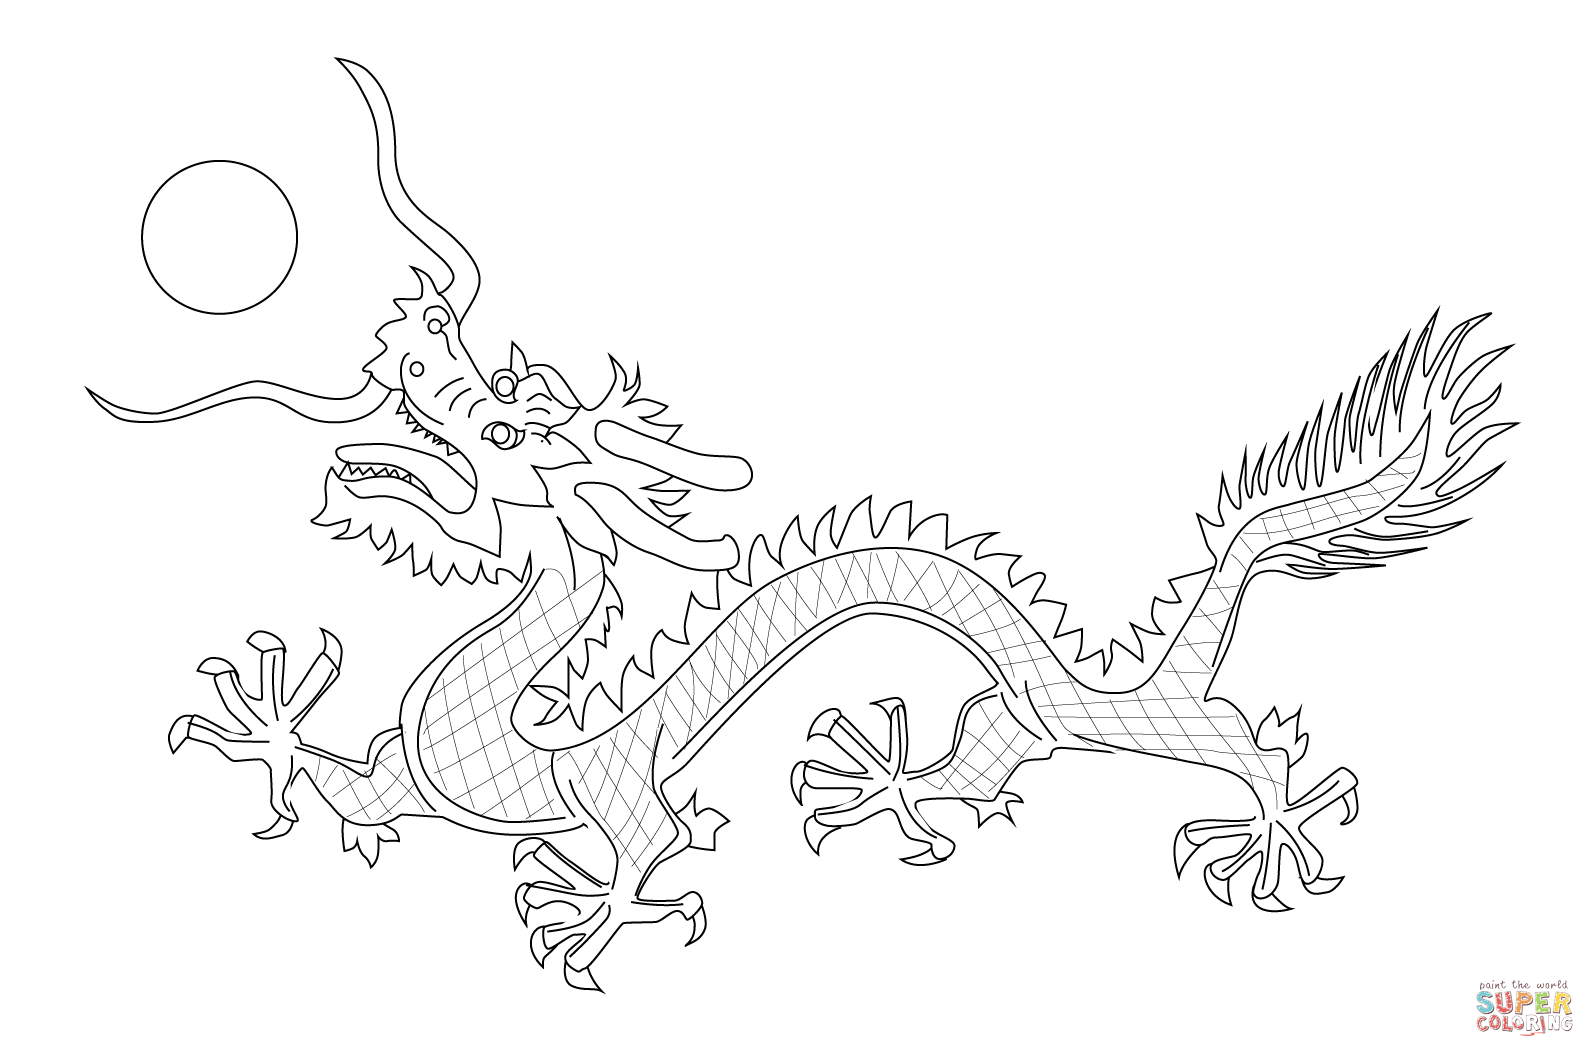 Chinese Dragon from The Flag of Qing Dynasty   Super Coloring ...